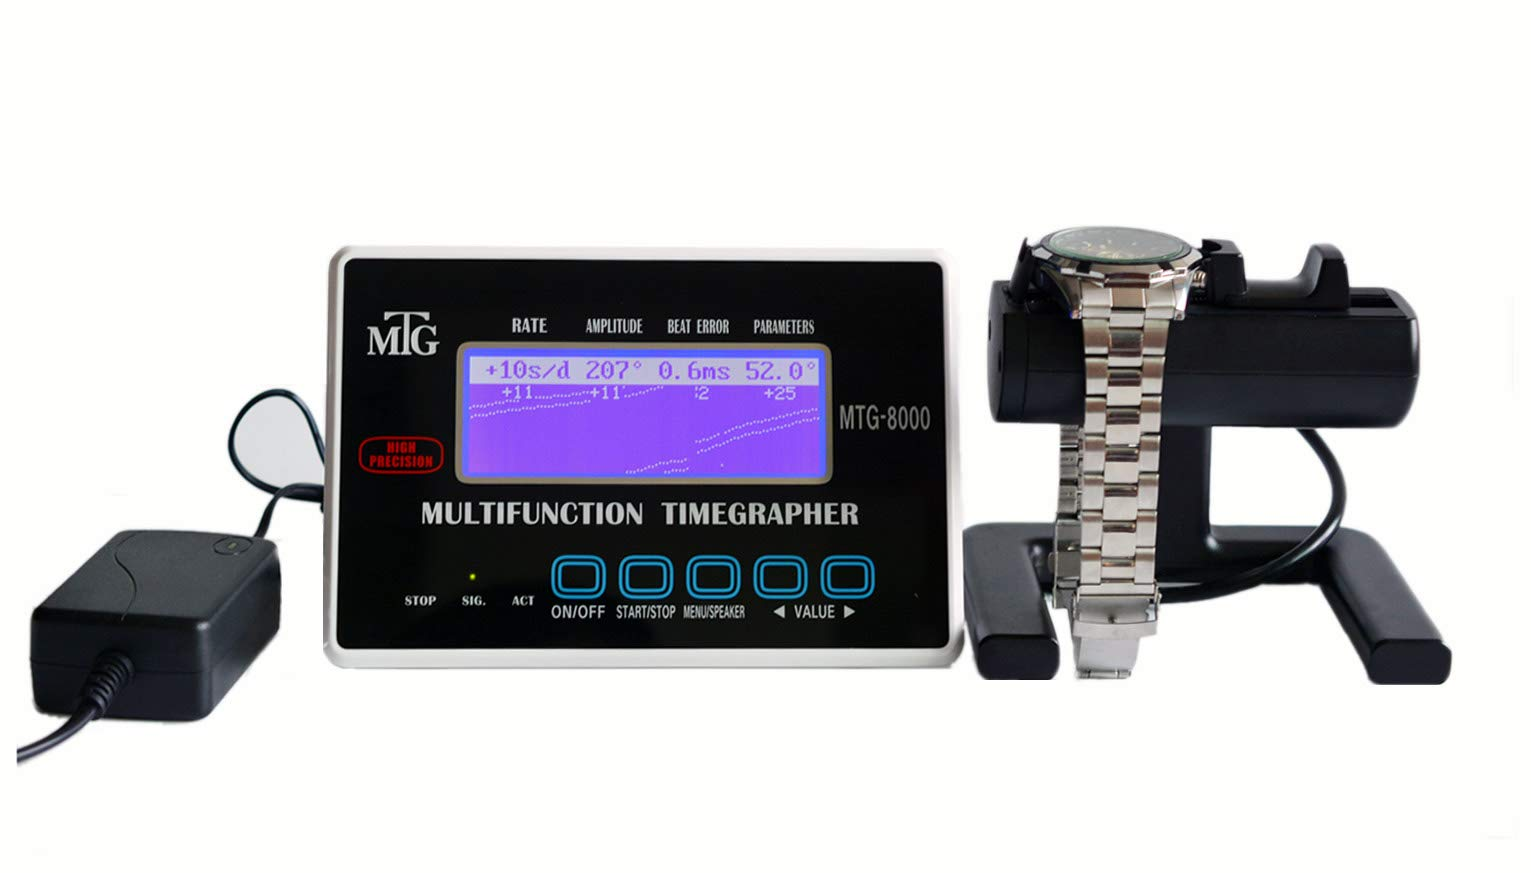 Mechanical Watch Tester Timing Multifunction Timegrapher MTG-8000 touch button